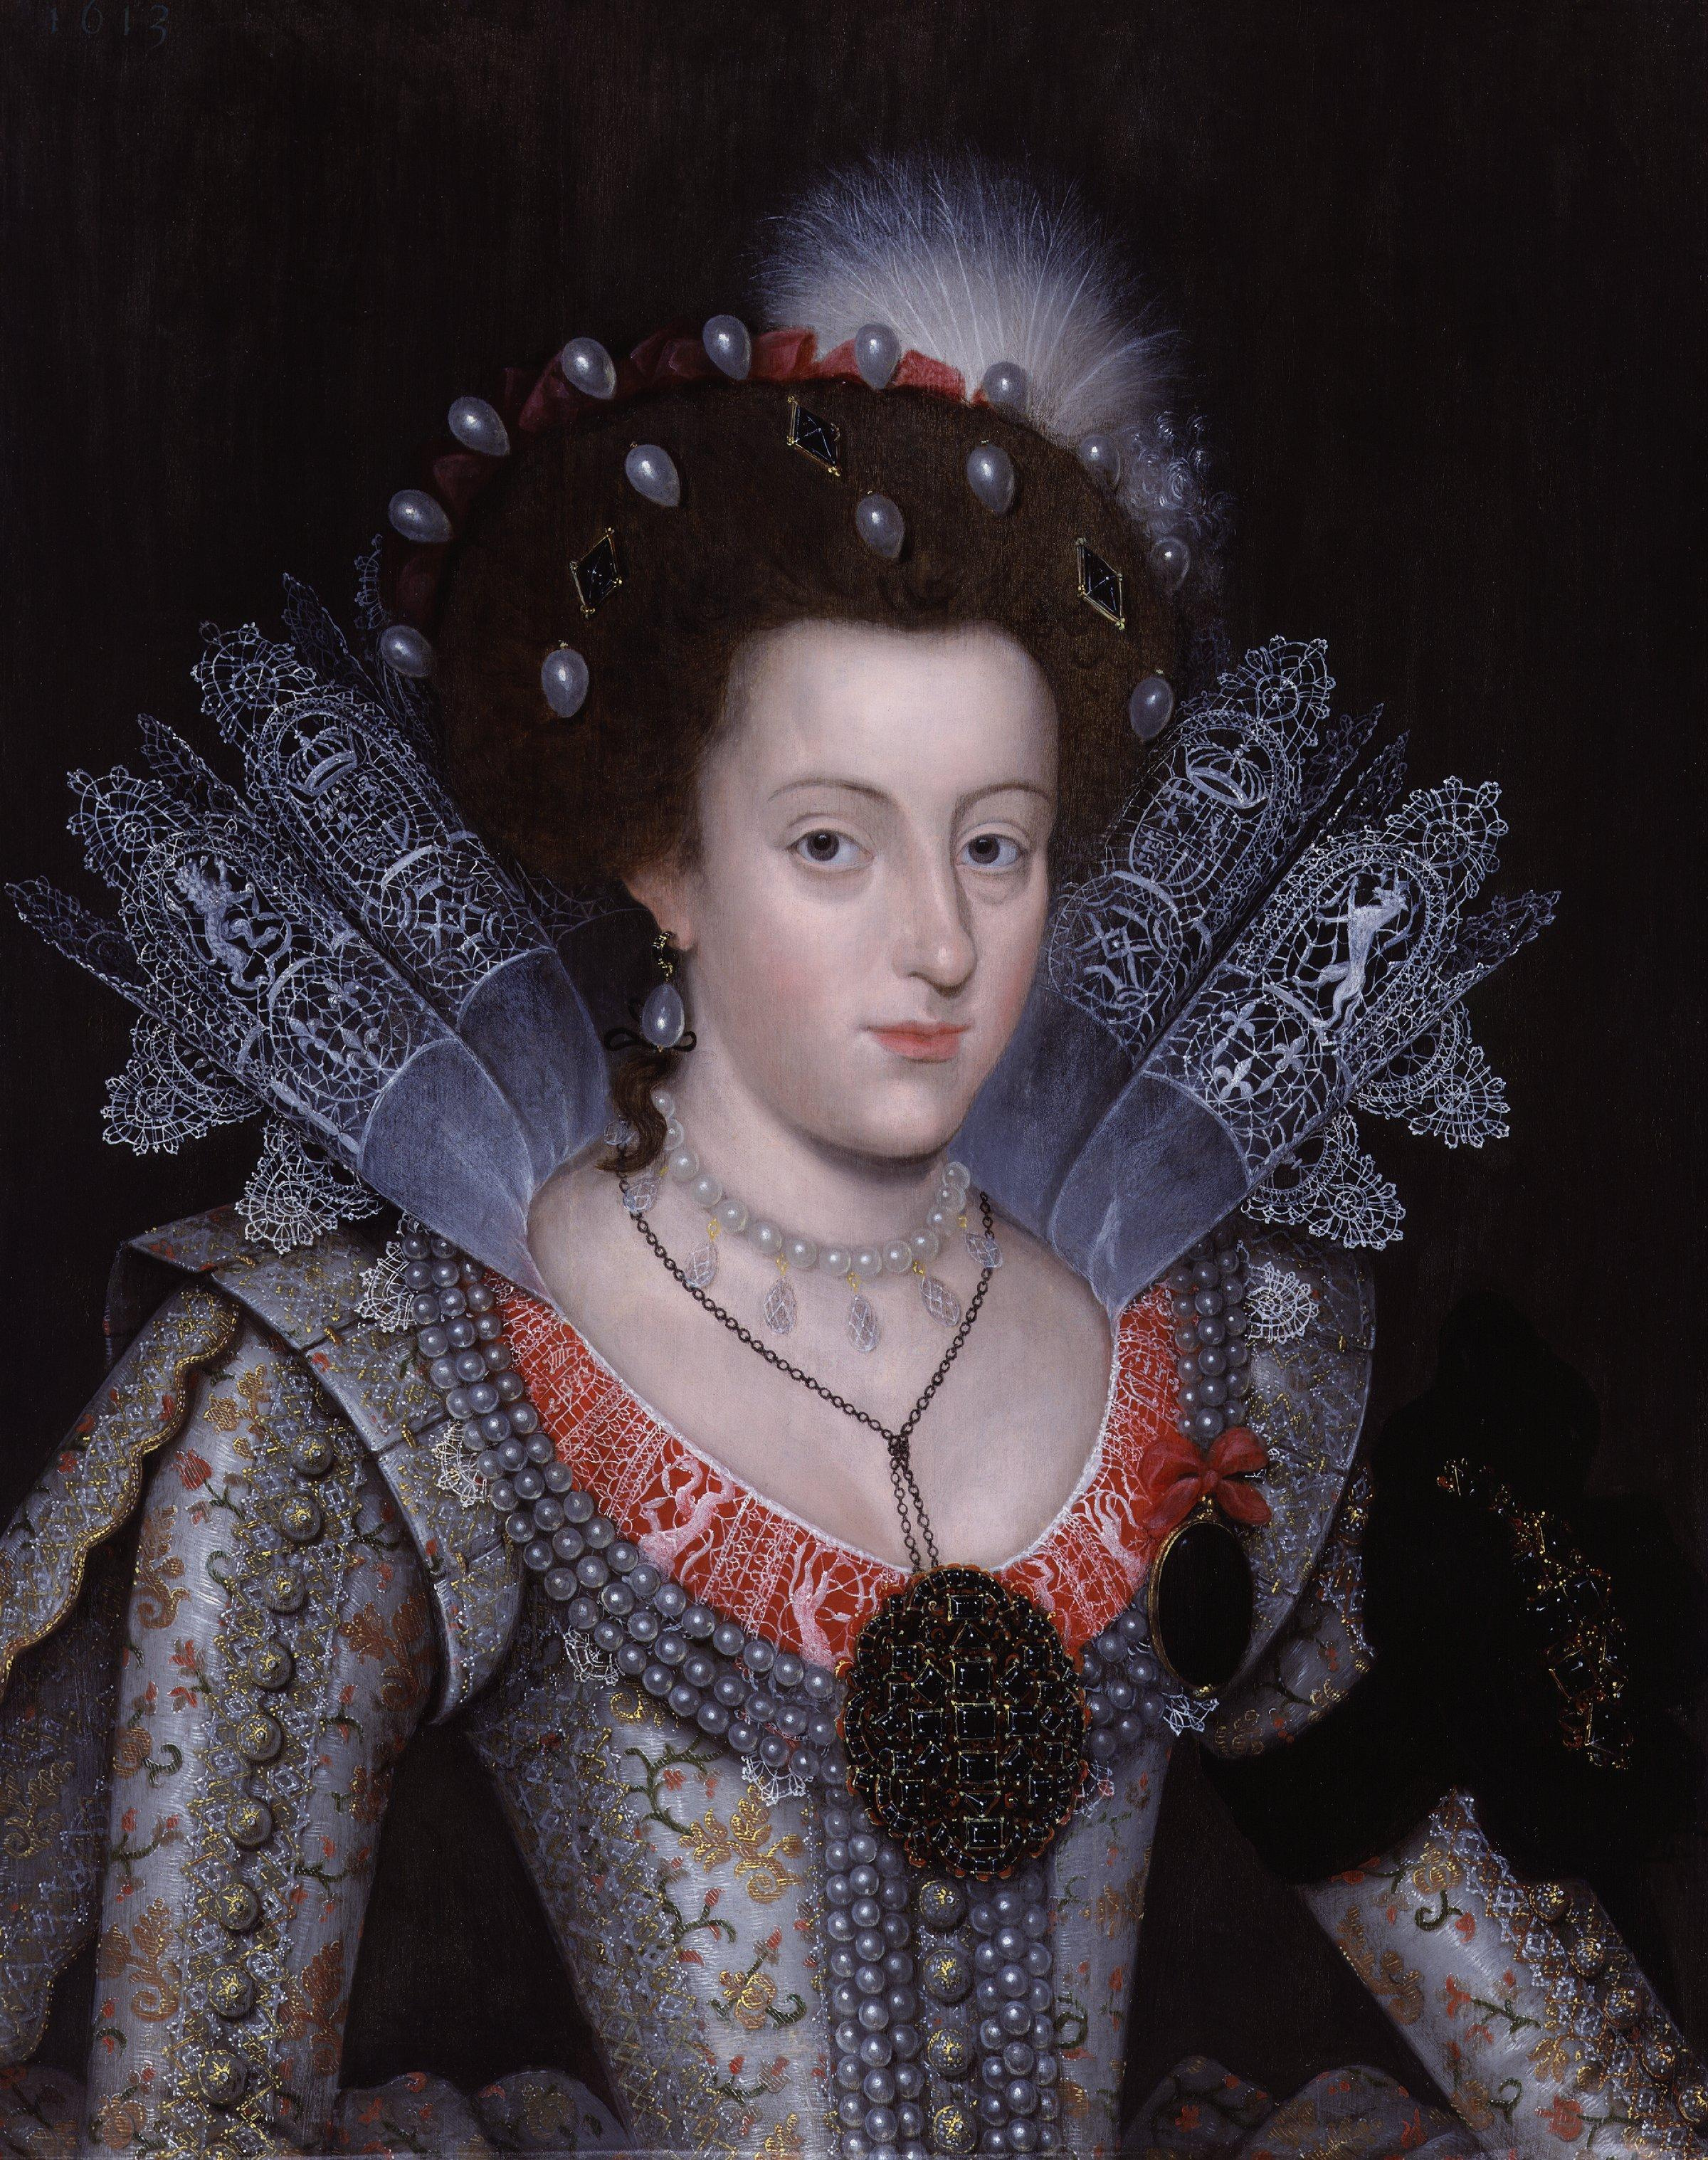 Elizabeth Queen of Bohemia